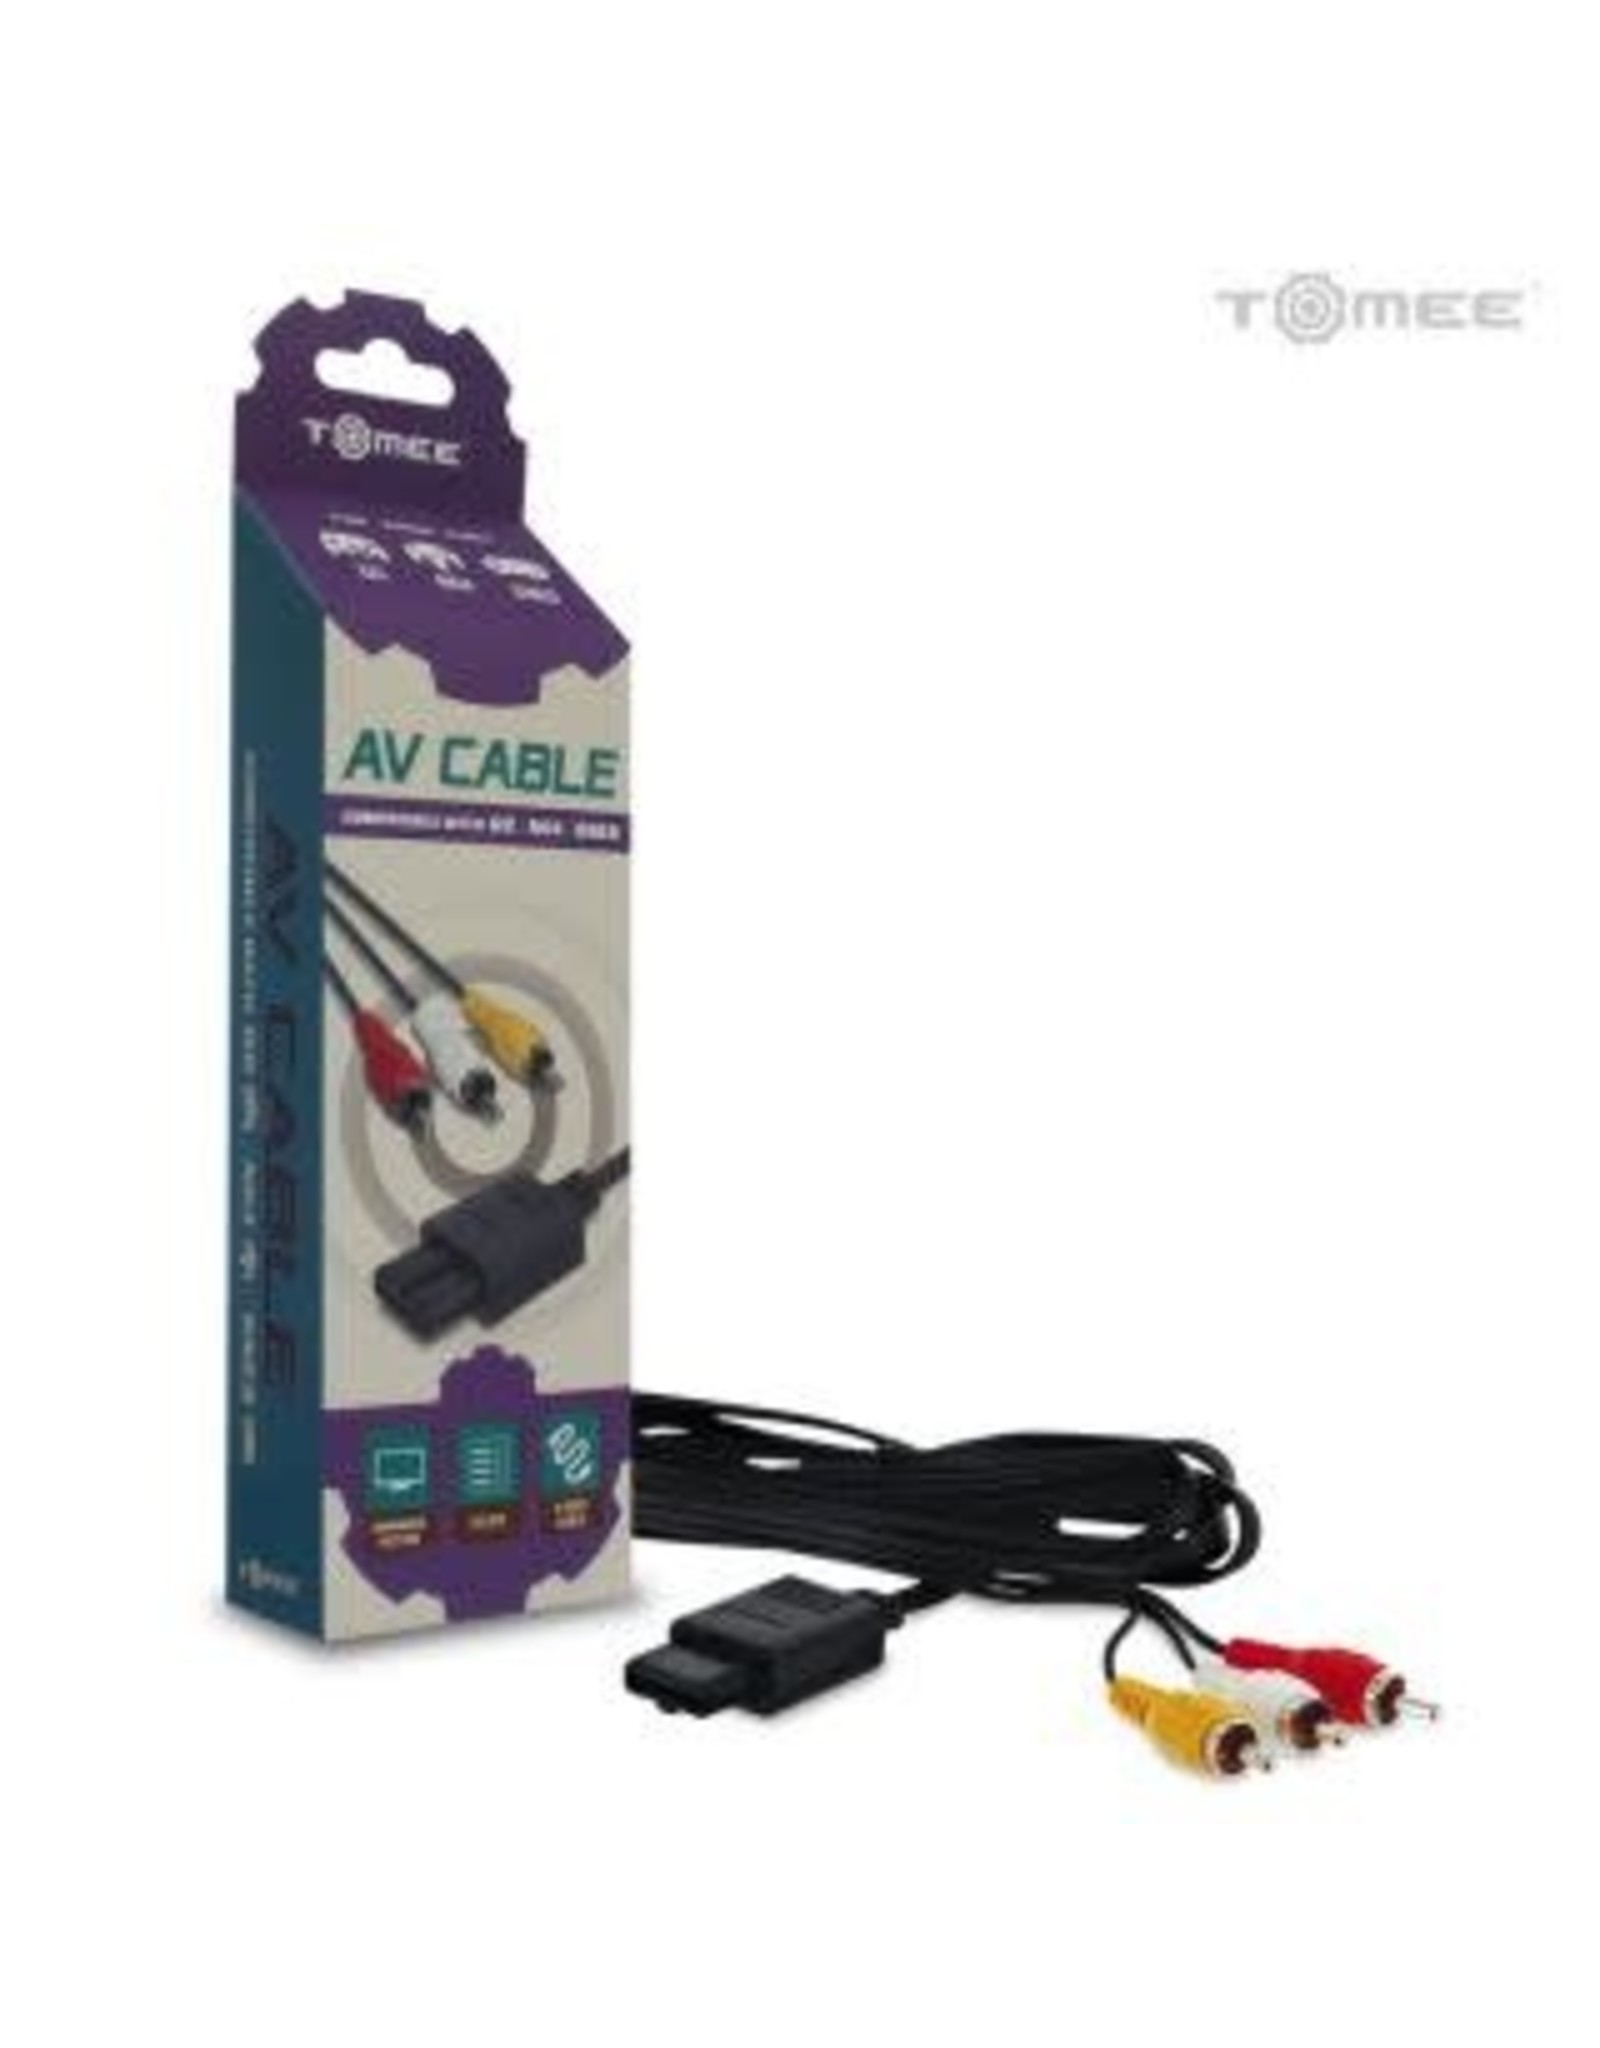 Gamecube/SNES/N64 A/V Cable